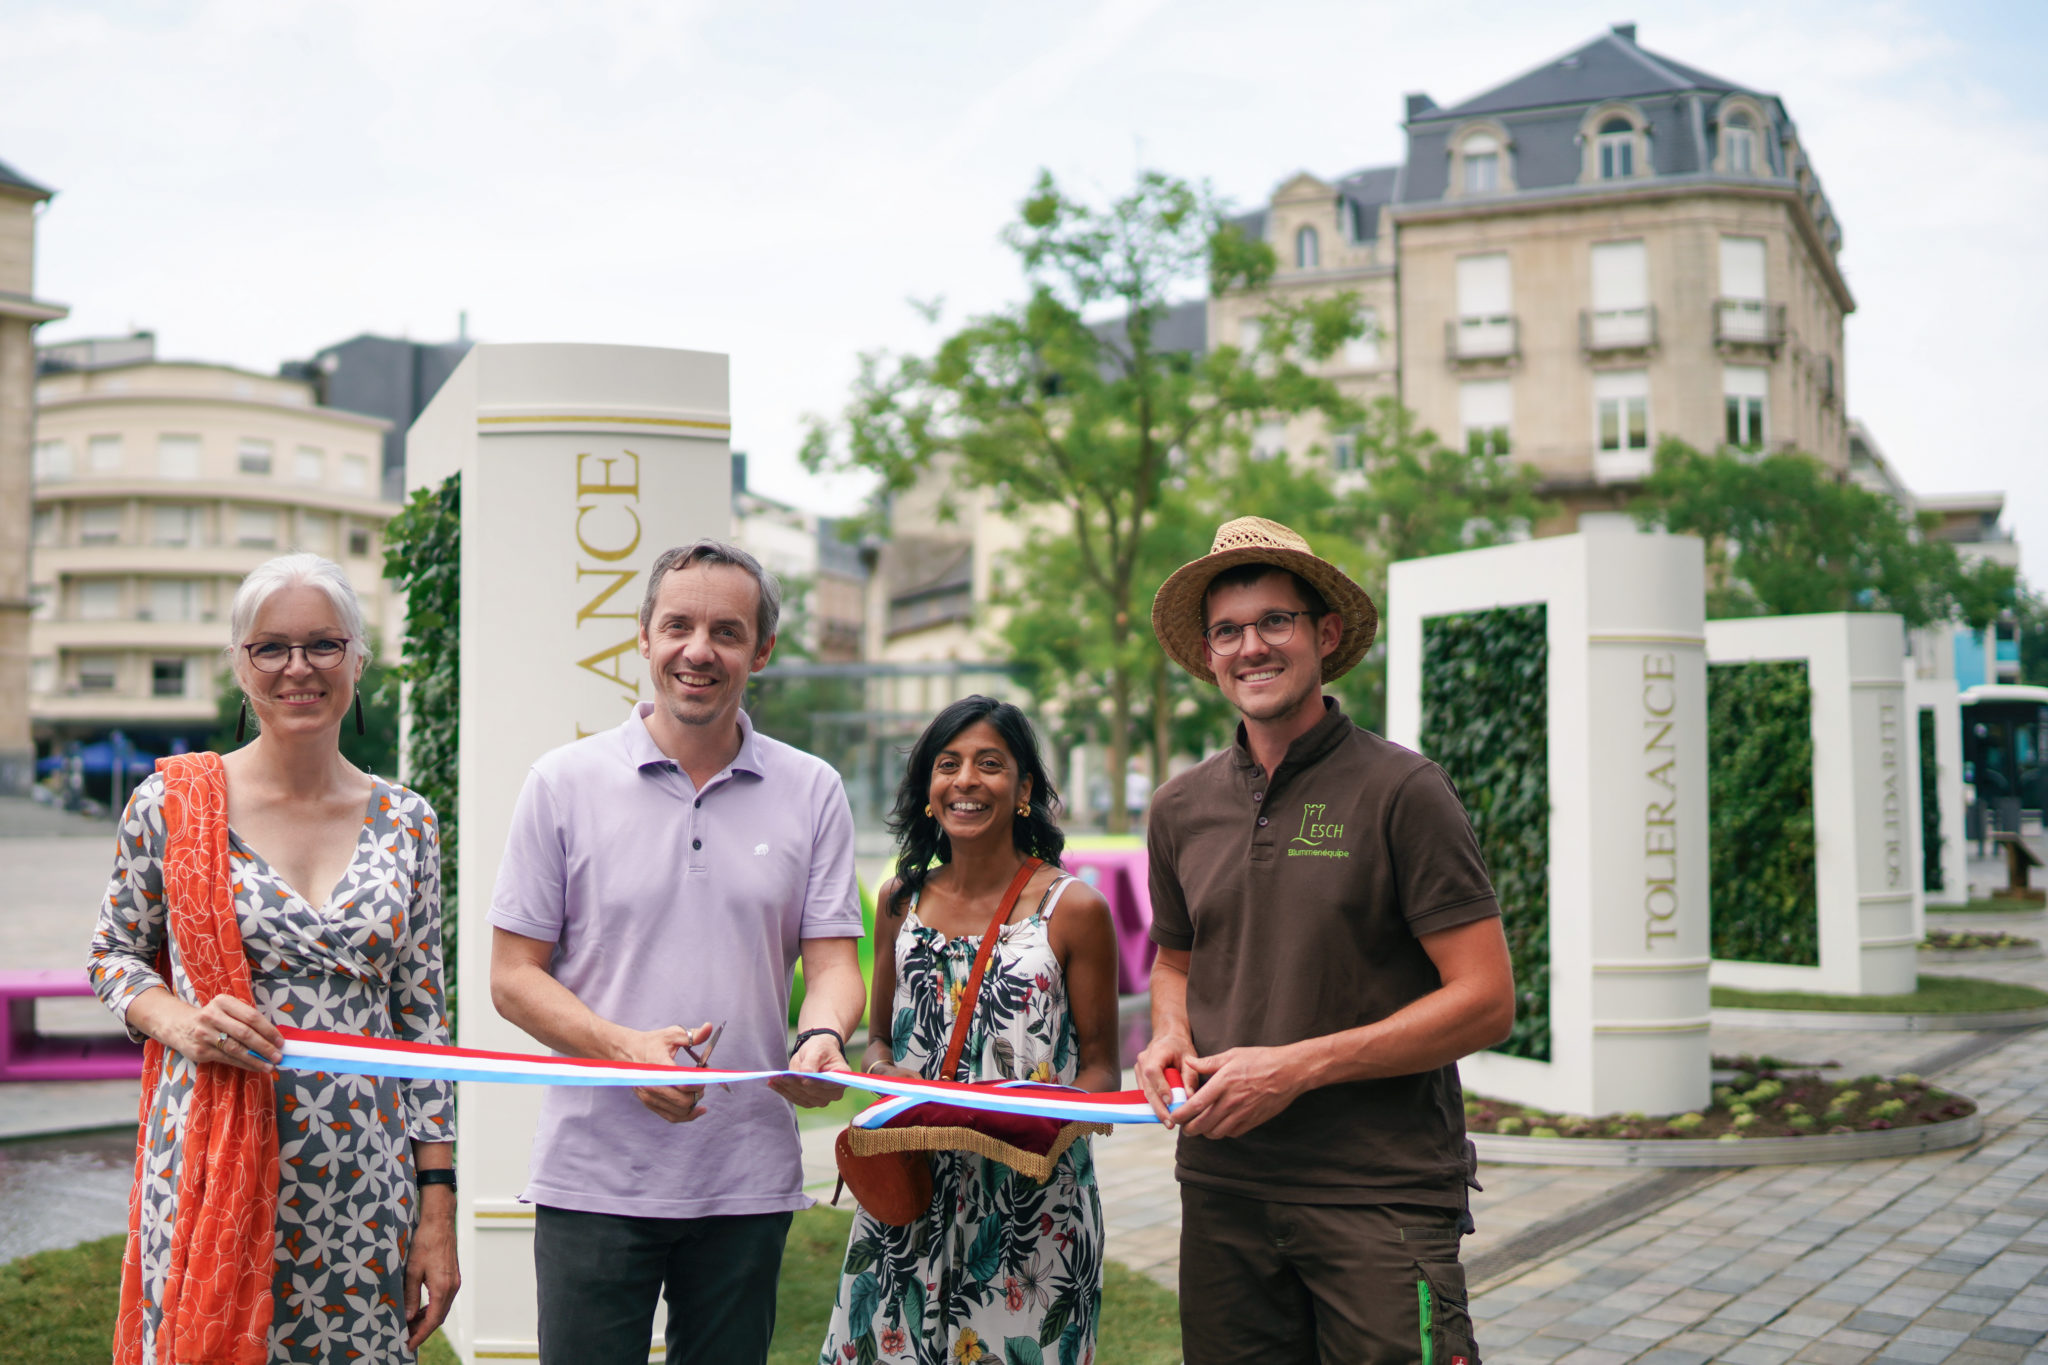 Ephemeral garden of living books installed in Esch